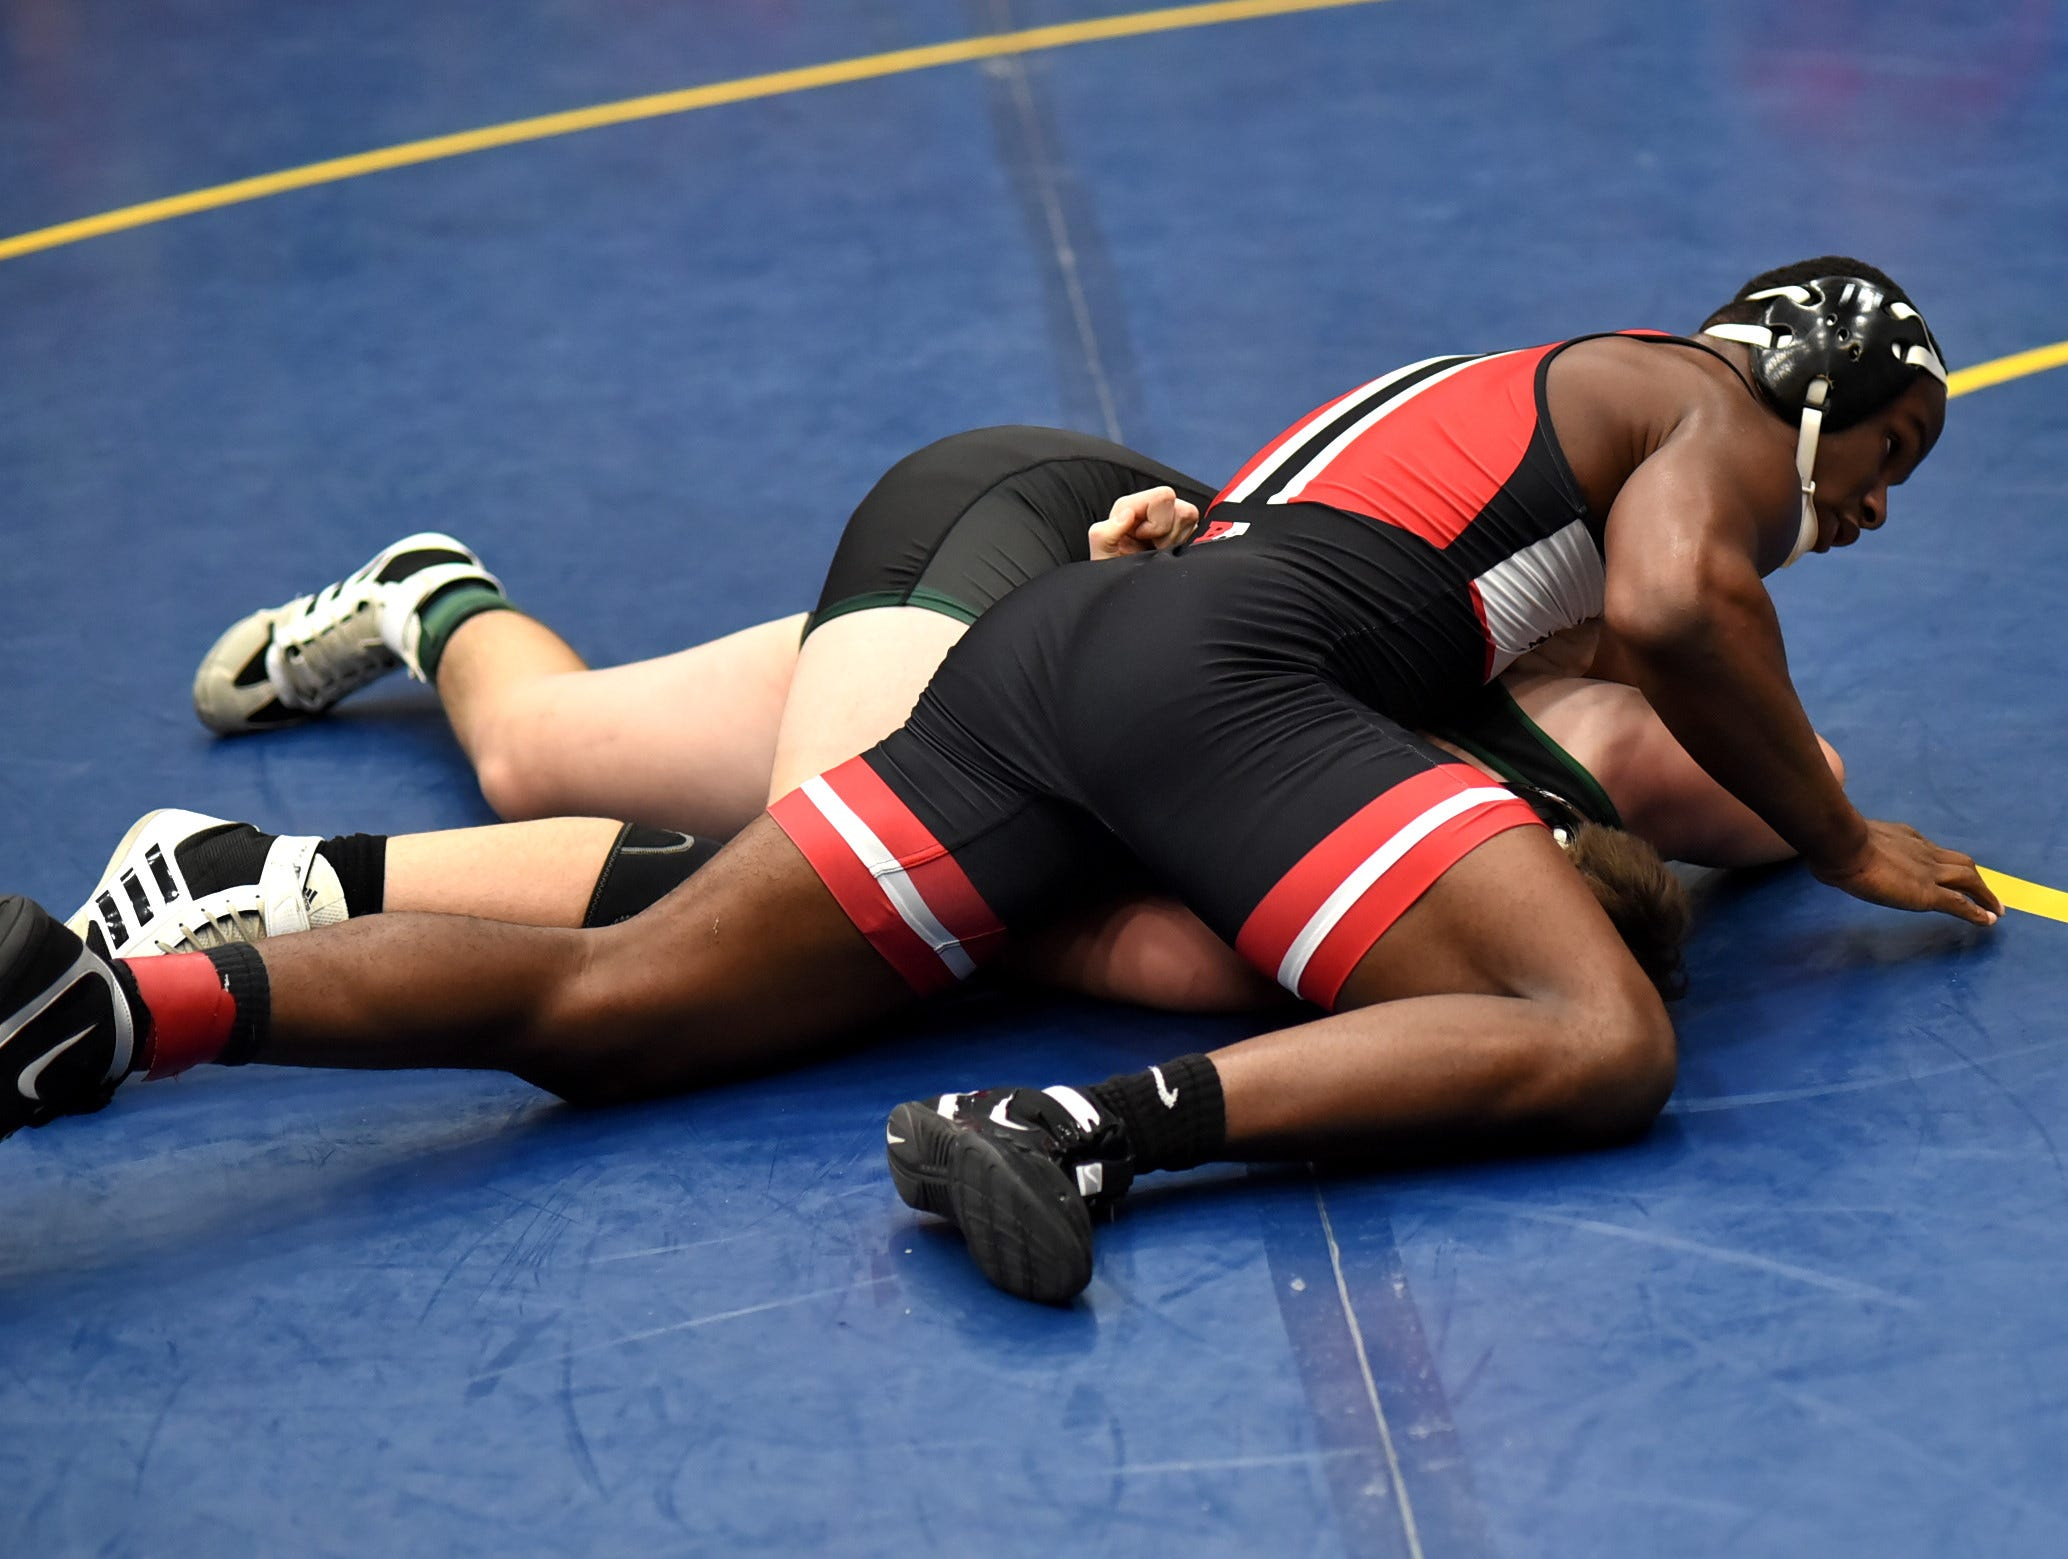 John Mark Williams of Indian Hill takes down Vincent Biser of McNicholas in early action at the Bob Kearns Madeira Invitational, January 4, 2019.